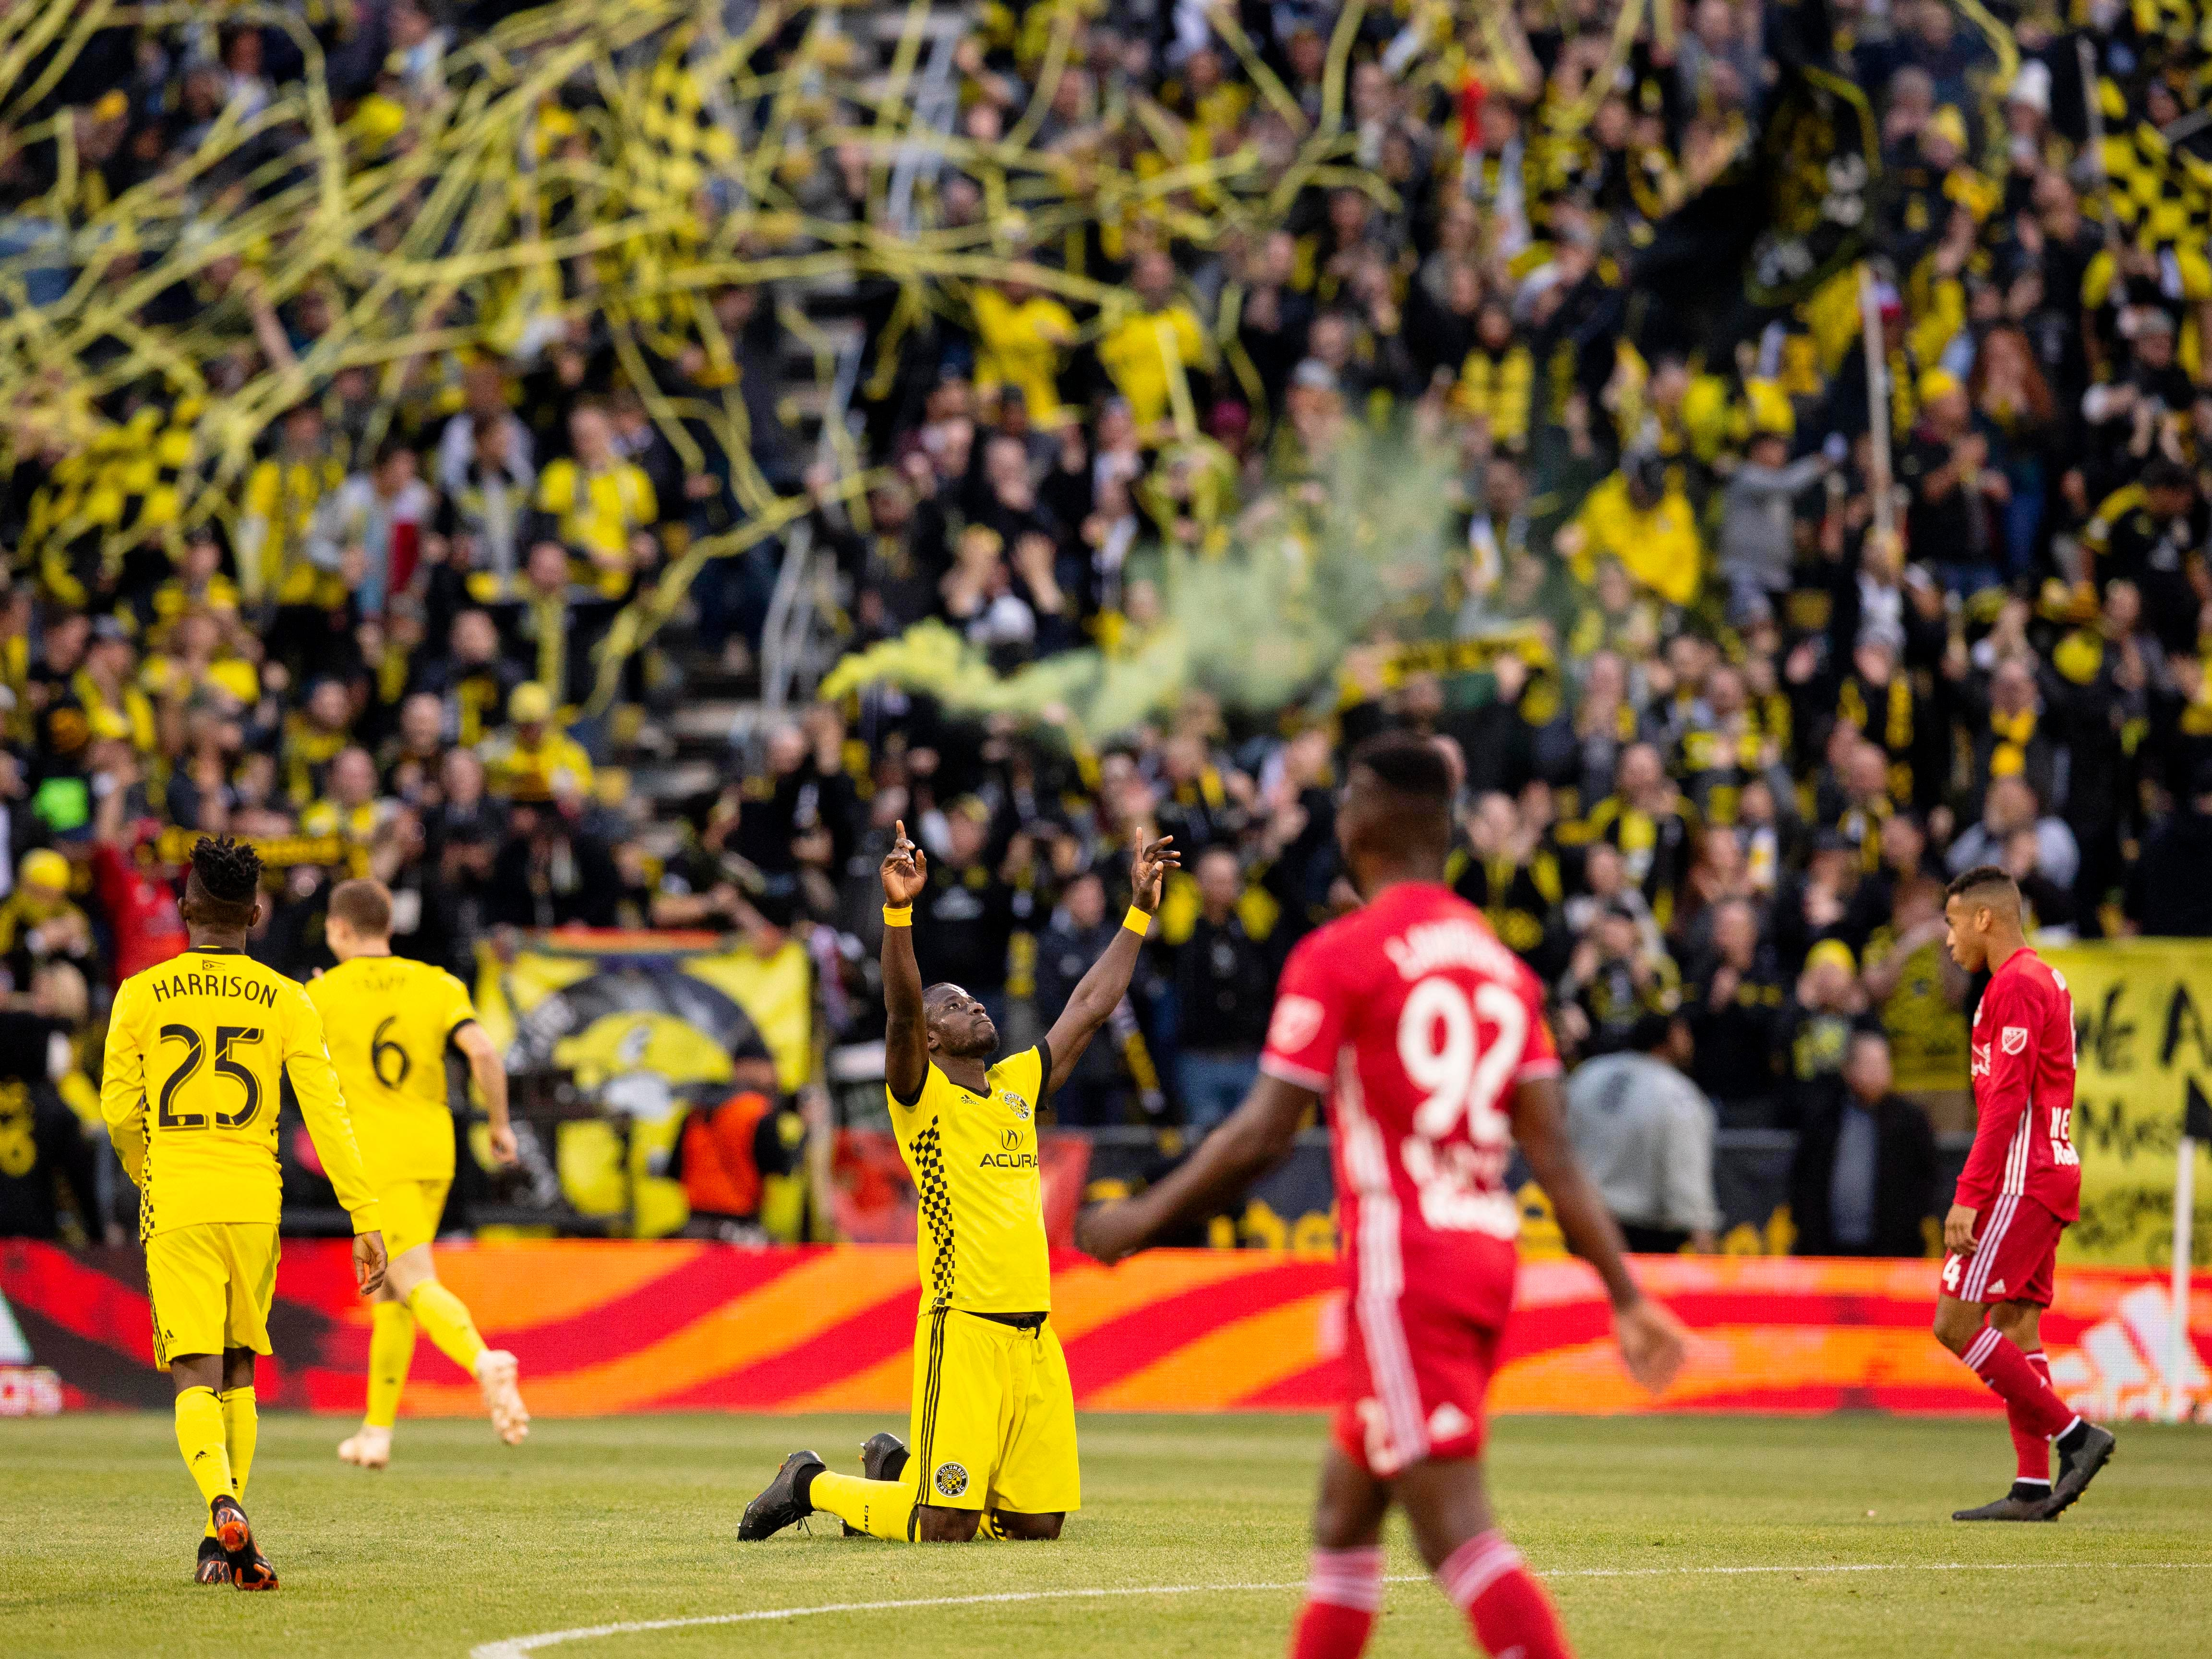 Columbus Crew SC defender Jonathan Mensah (4) reacts after a 1-0 win over the New York Red Bulls at Mapfre Stadium.